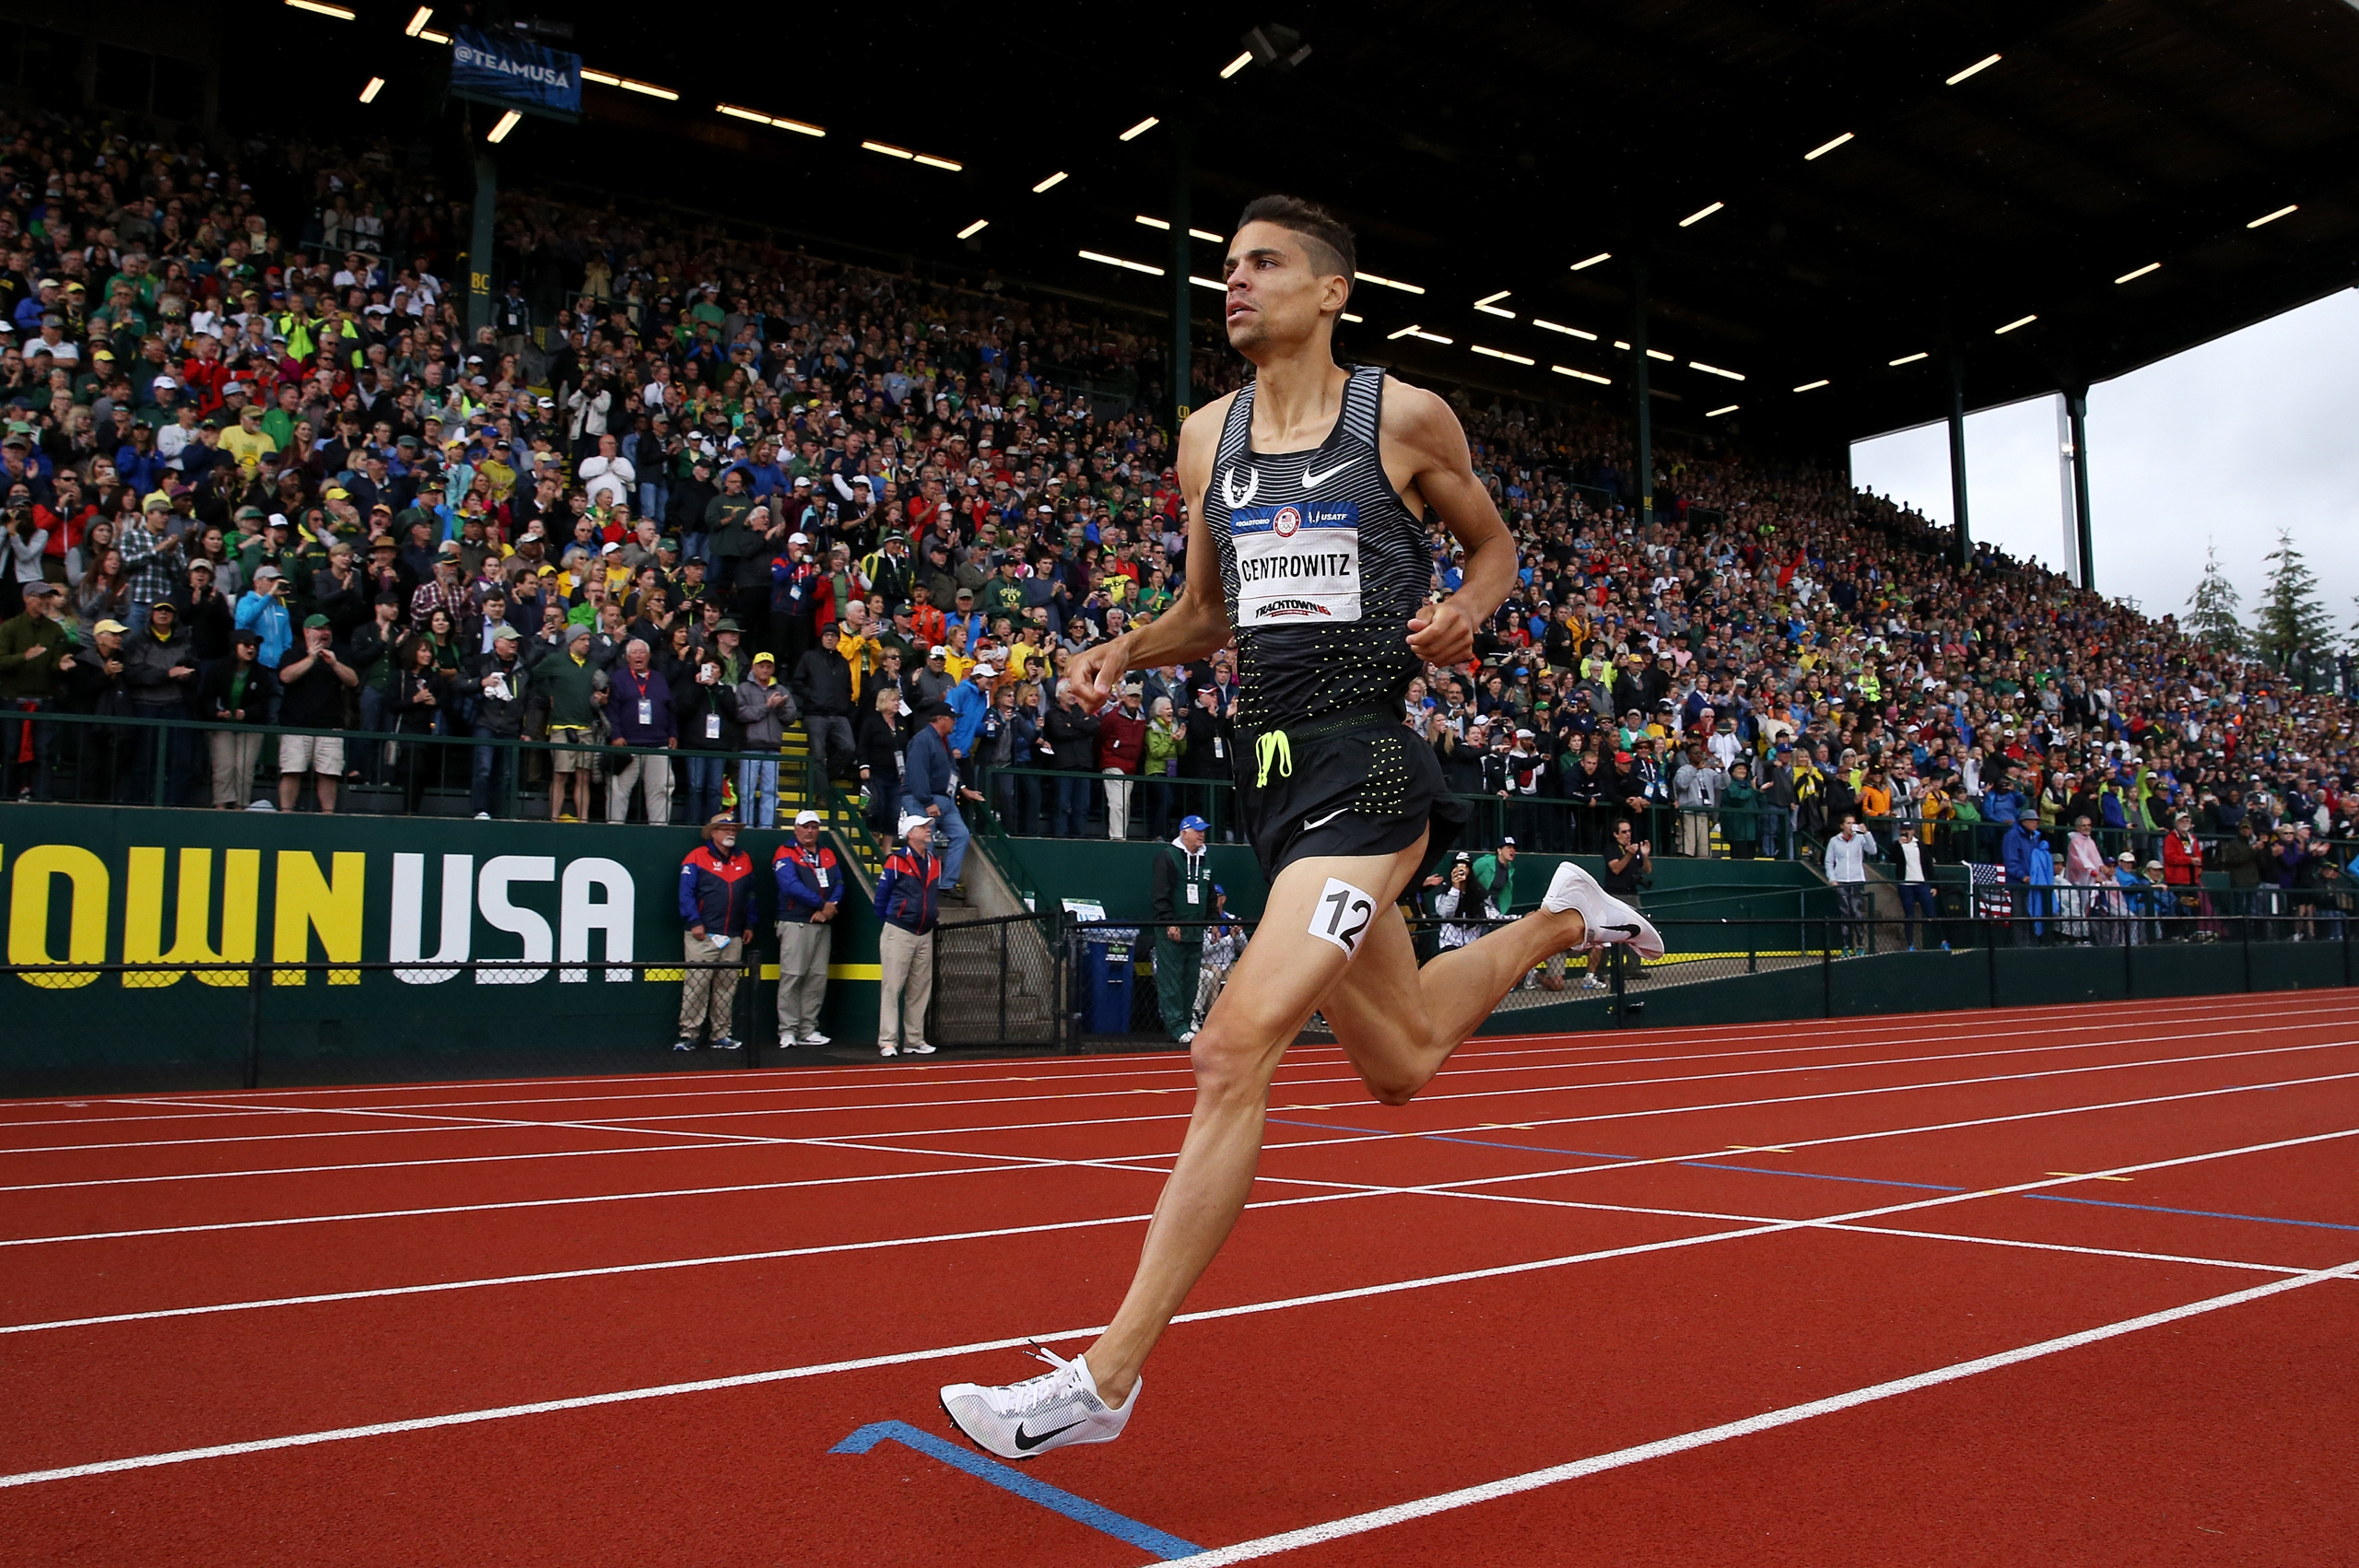 <strong>Matthew Centrowitz, Track and Field, USA</strong>Centrowitz's father Matt Sr. ran for the U.S. at the 1976 Games. Matt Jr. finished fourth in London in 2012 and set an Olympic-trials record this year in the 1,500 m, giving him a shot to medal in Rio.